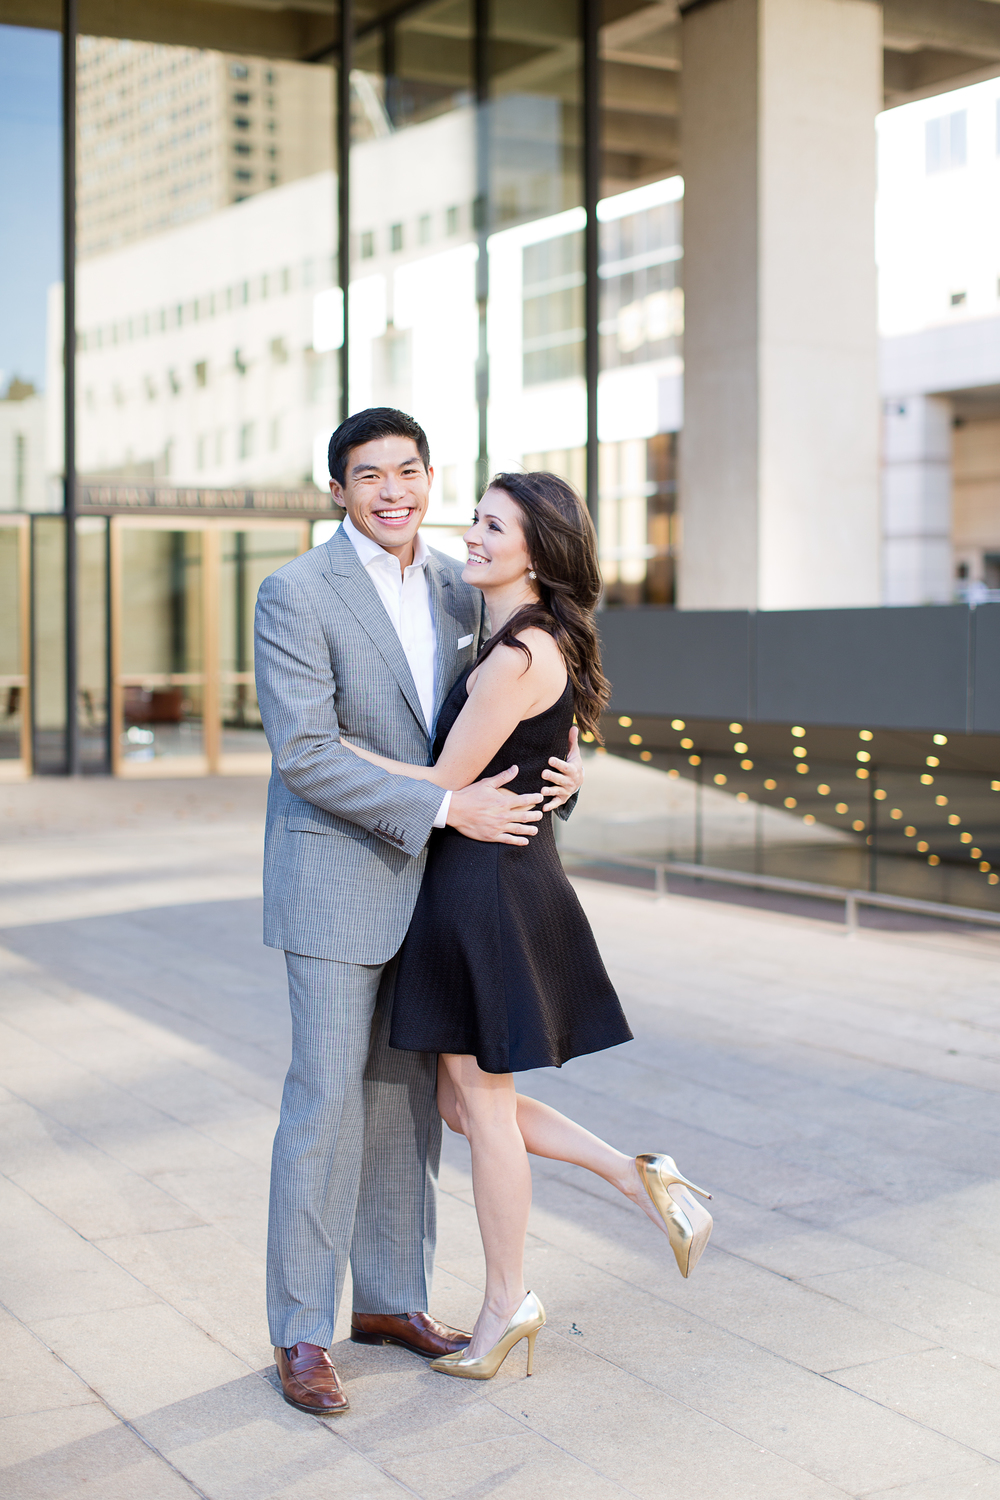 Melissa Kruse Photography - Emily + Kevin Engagement Session-12.jpg